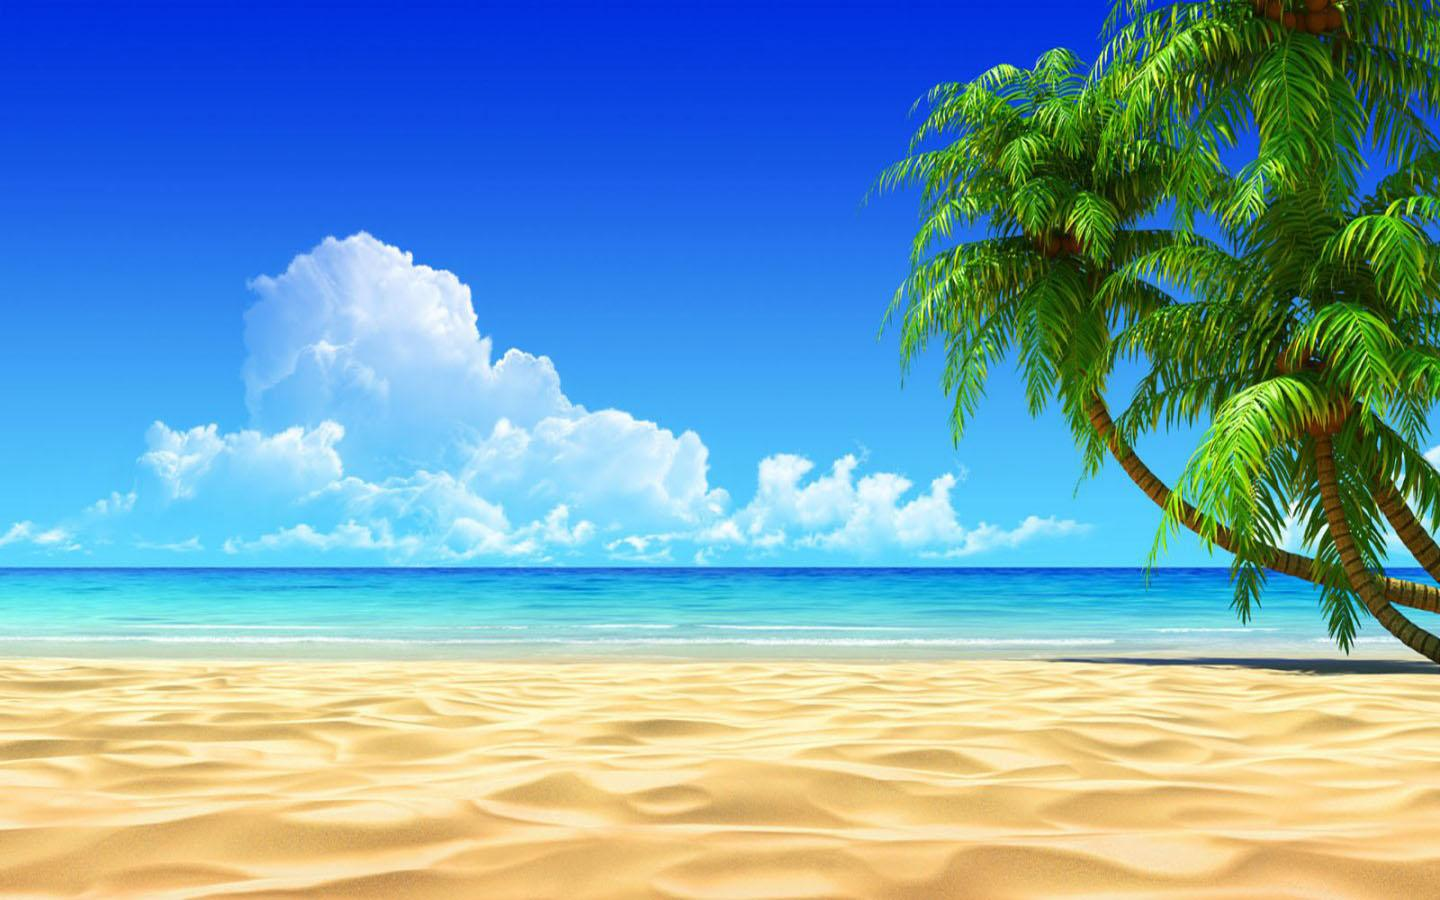 Summer Beach Wallpaper   Android Apps on Google Play 1440x900